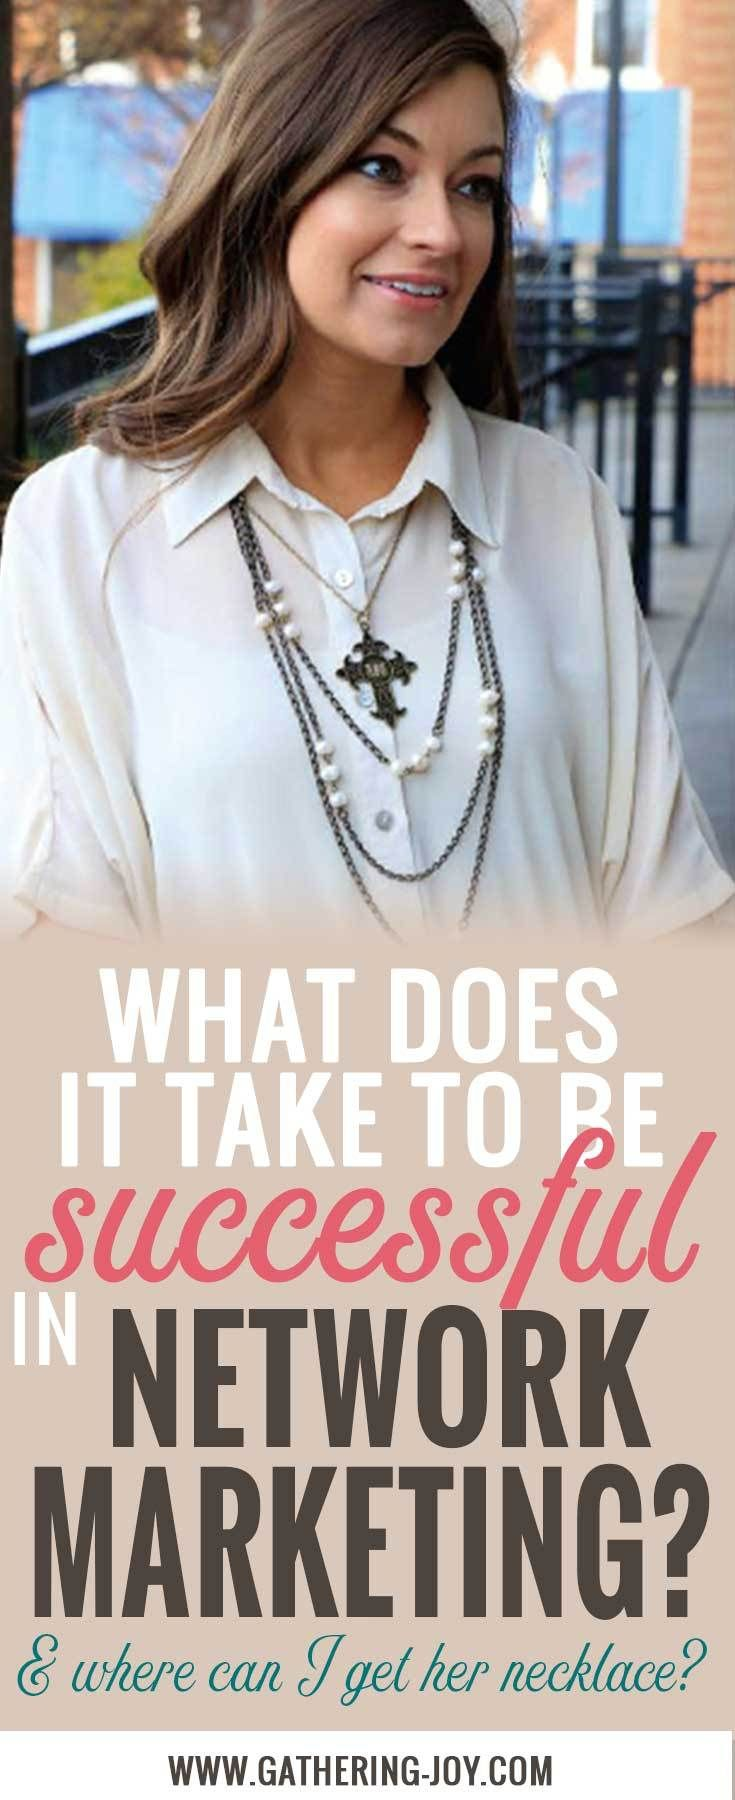 An Initial Outfitters distributor gives her secret to success in network marketing and shares her biggest frustration with the company!